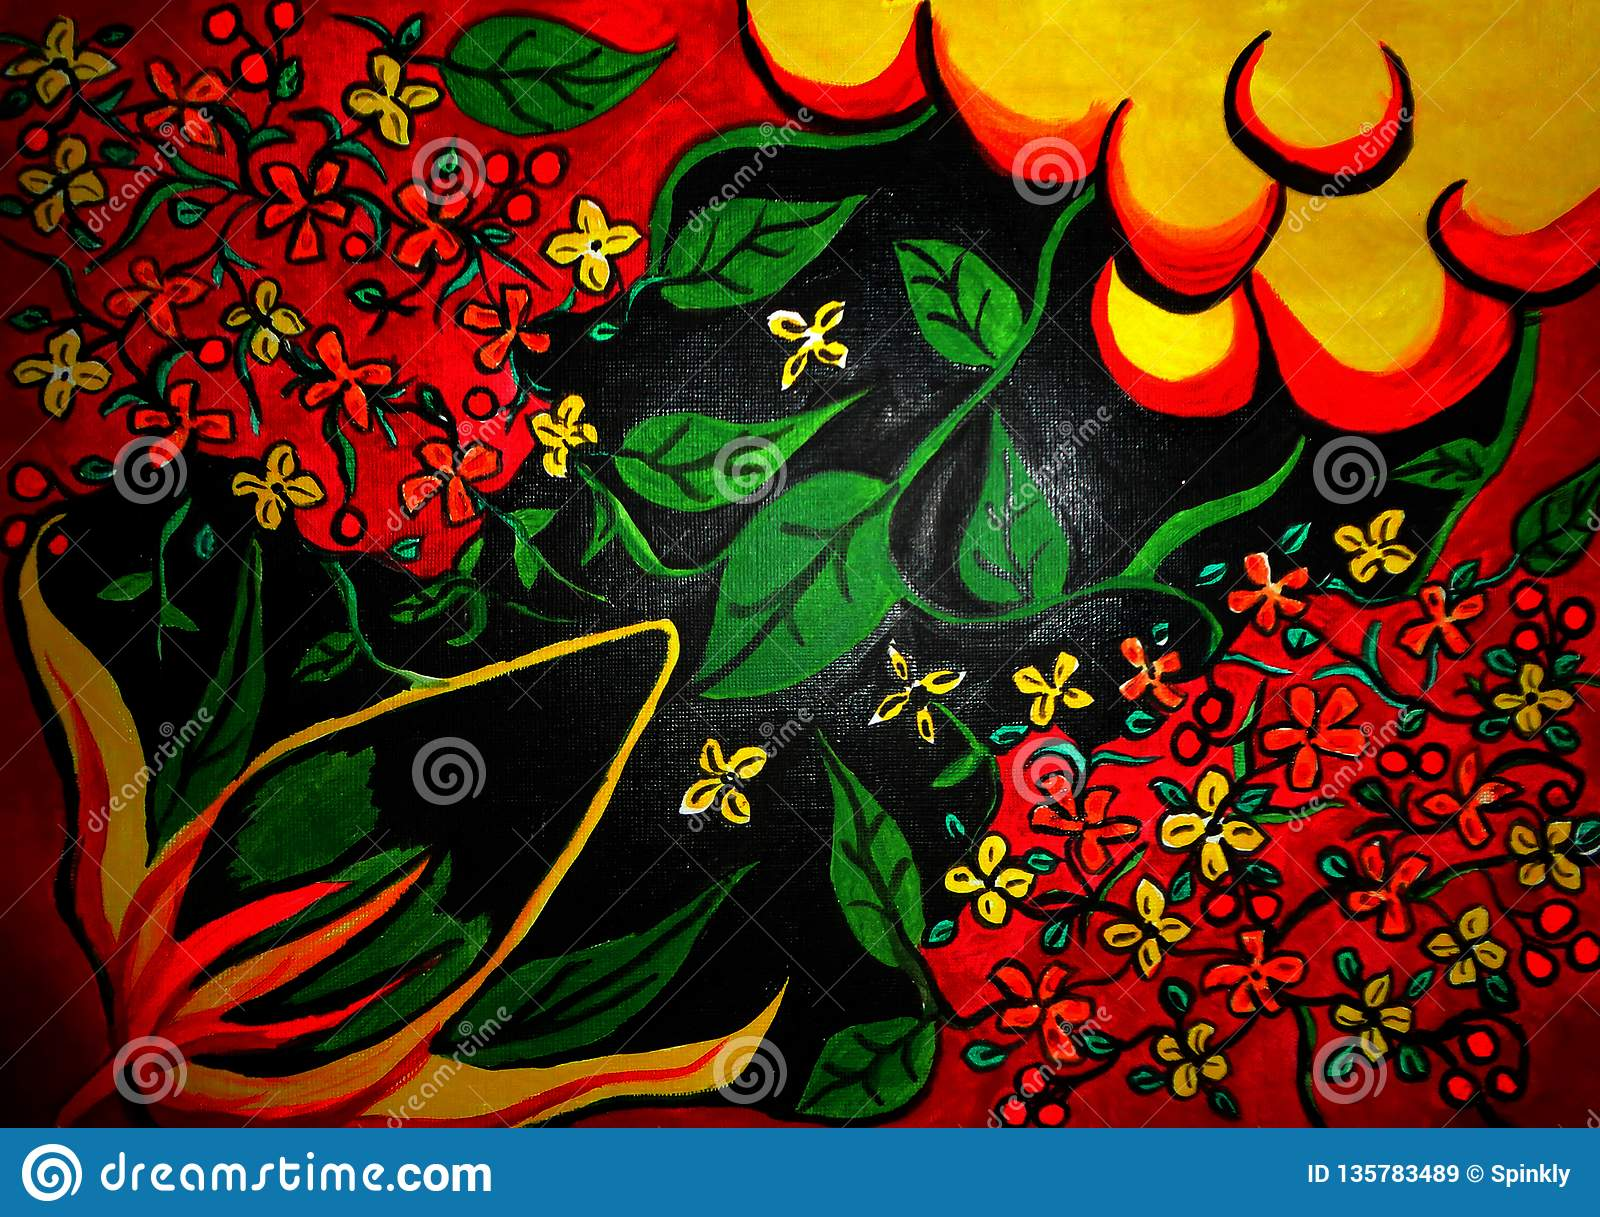 Flower painting on canvas created background design